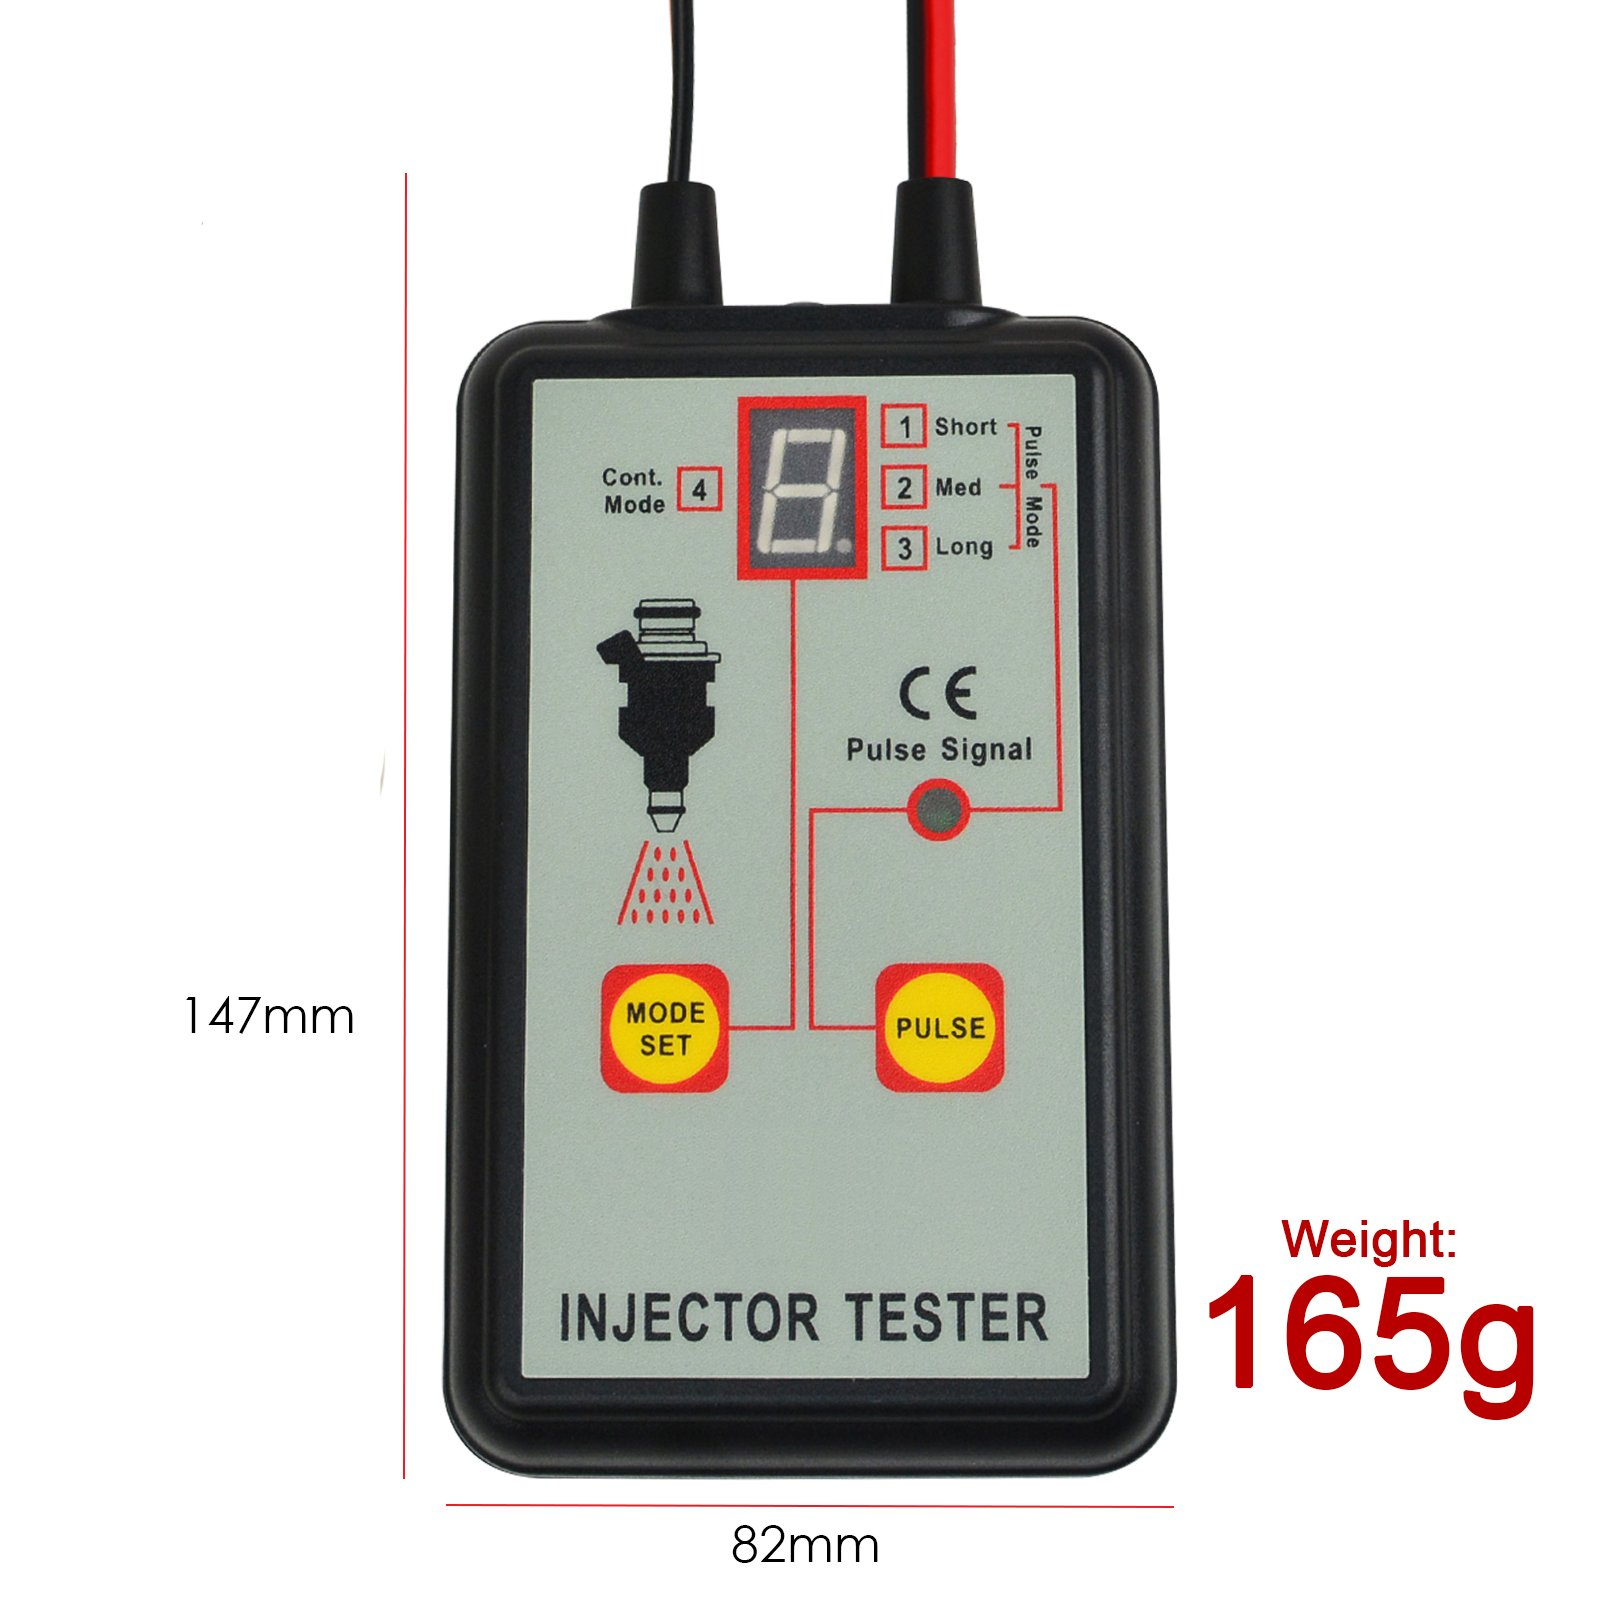 Automotive Fuel Injector Tester, 12V 4 Pulse Modes, Handheld Car Vehicle Fuel Pressure System Diagnostic Scan Testing Tool Gauge, Individual Test Stuck/Leaking/Burnt-out Problem by Gain Express (Image #6)